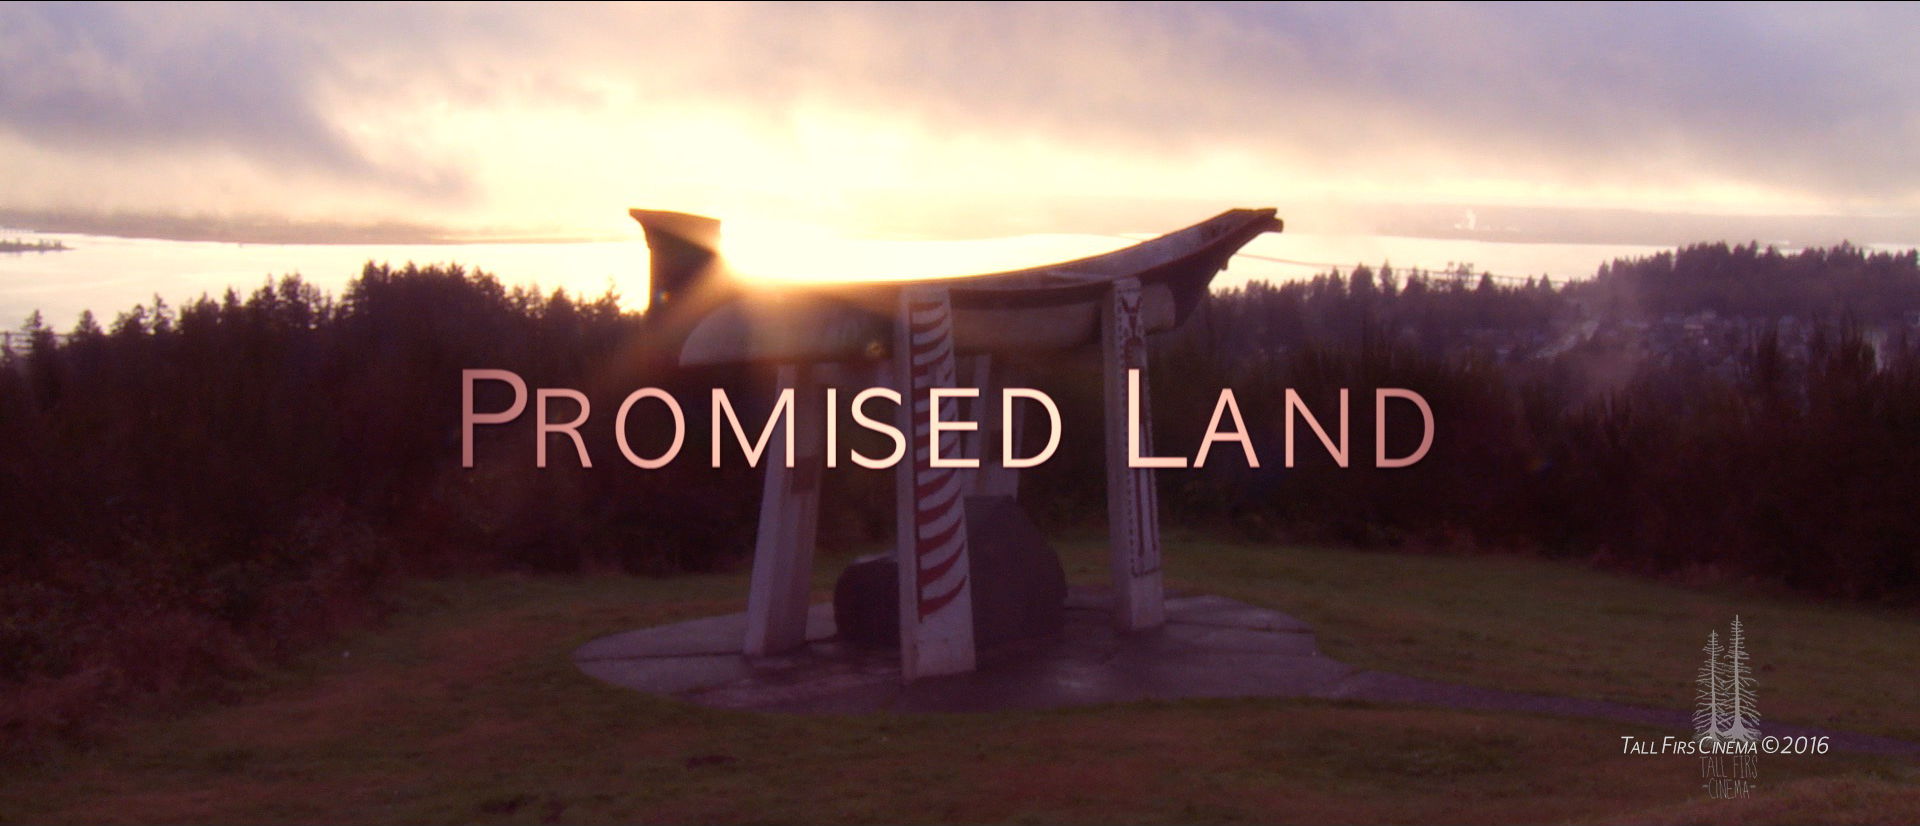 Social media banner for Tall Firs Cinema's   Promised Land